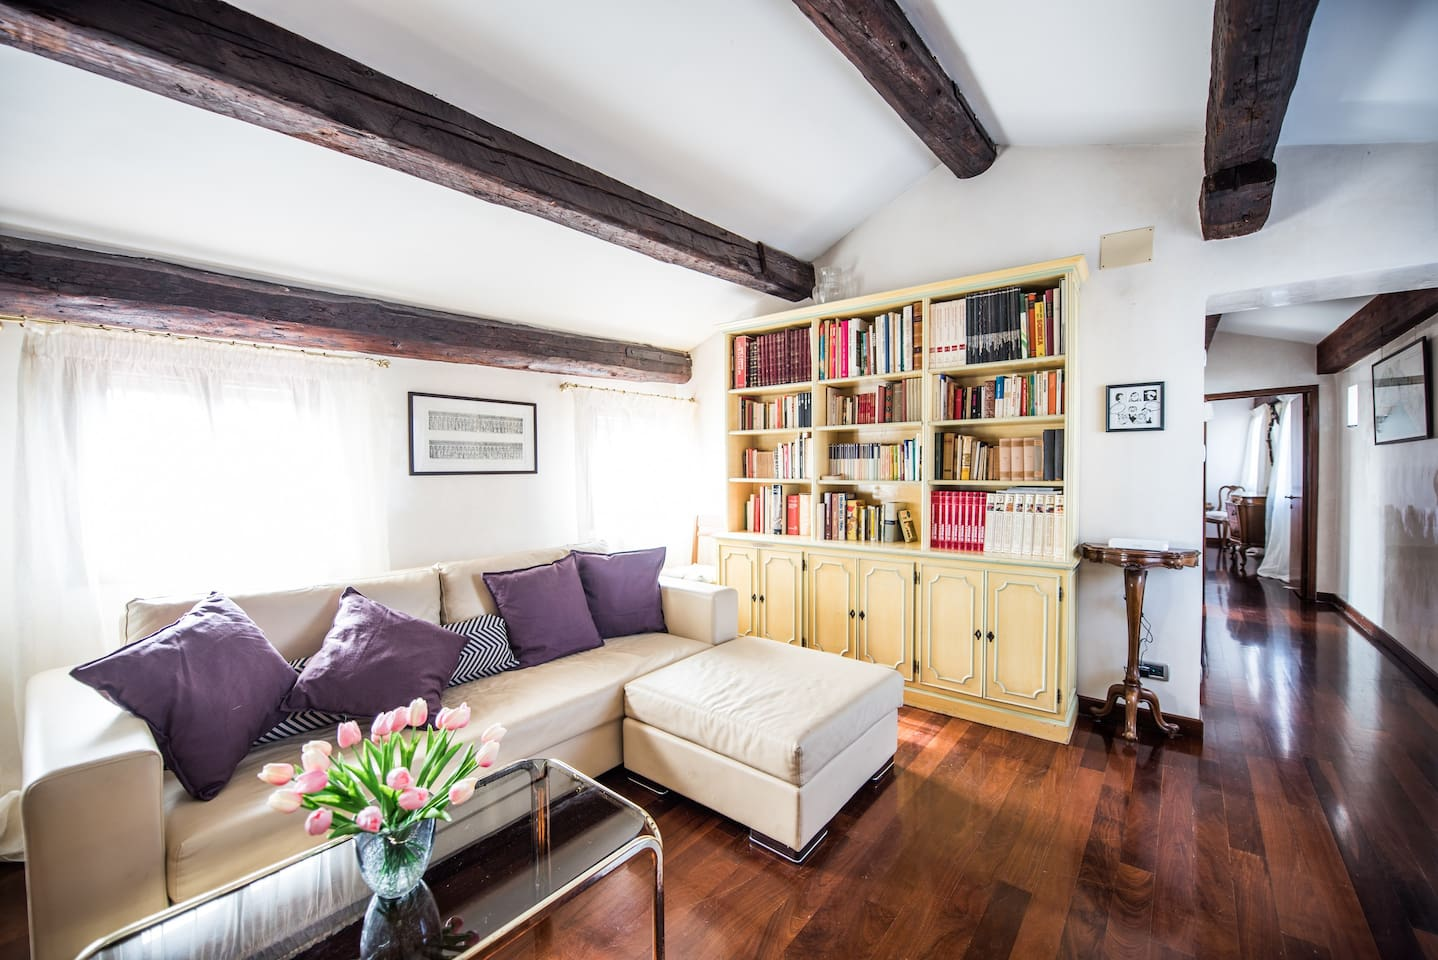 The Living room - The sofa & The bookcase